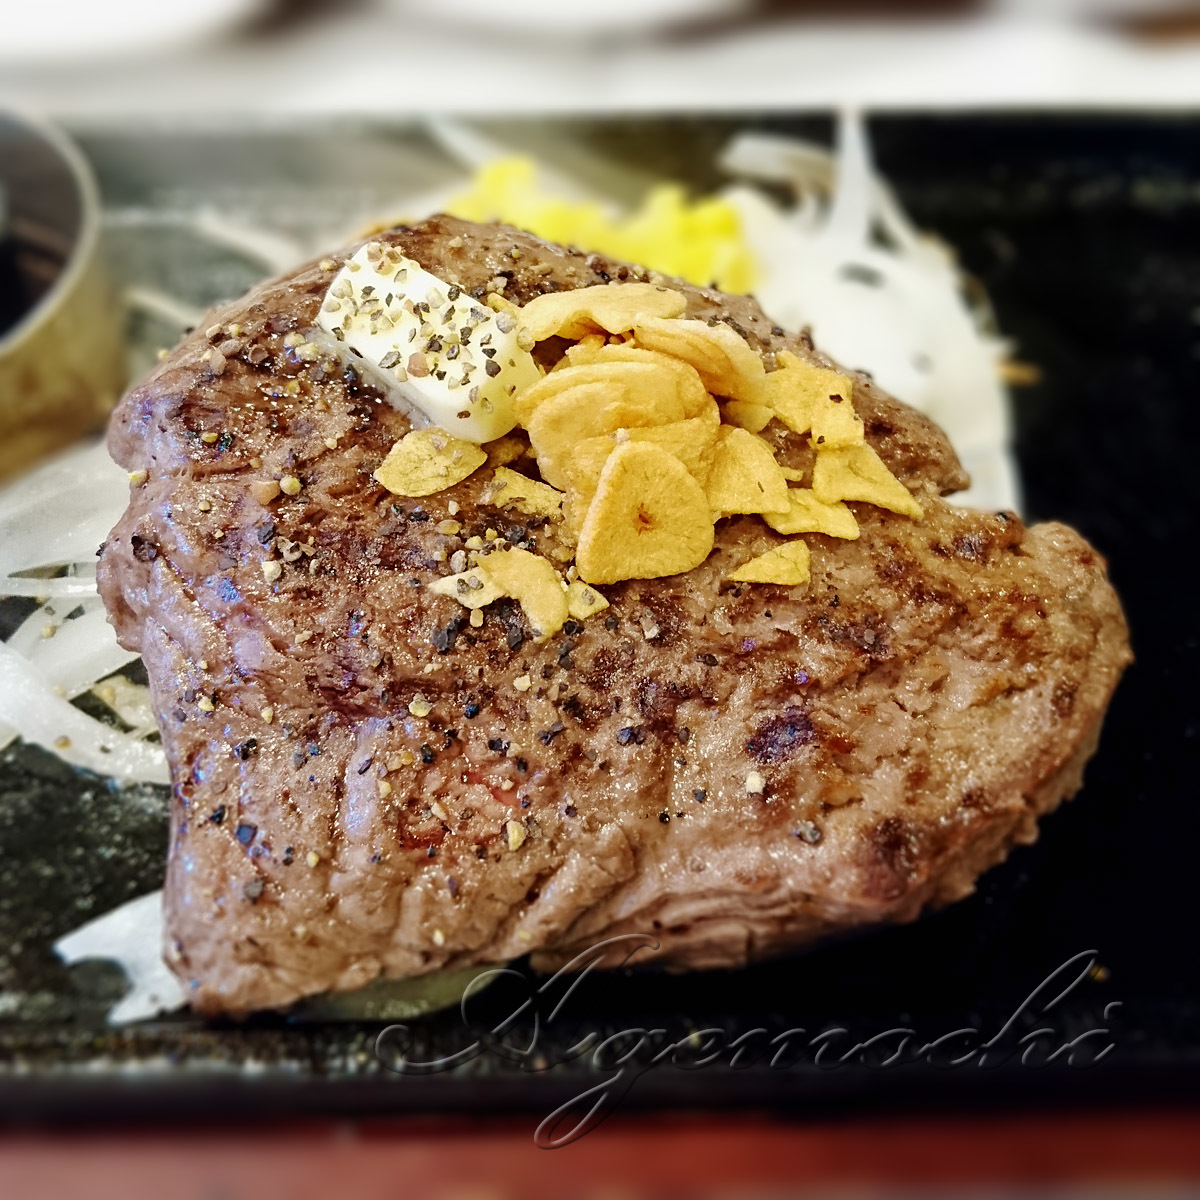 gyushin_akamisteak0.jpg